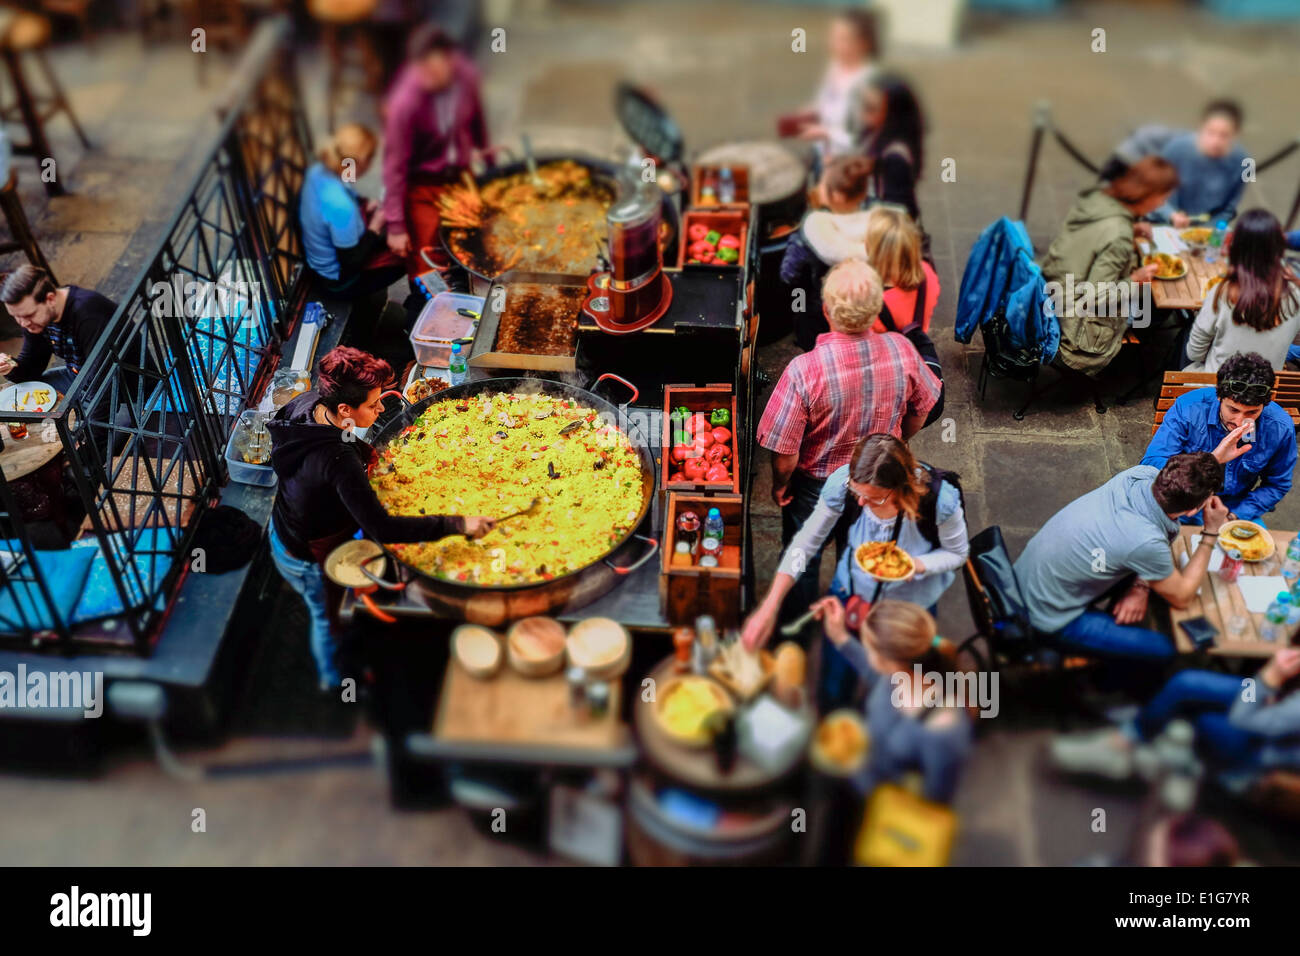 Food stall cooking large Paella dish, Covent Garden, London, UK - Stock Image